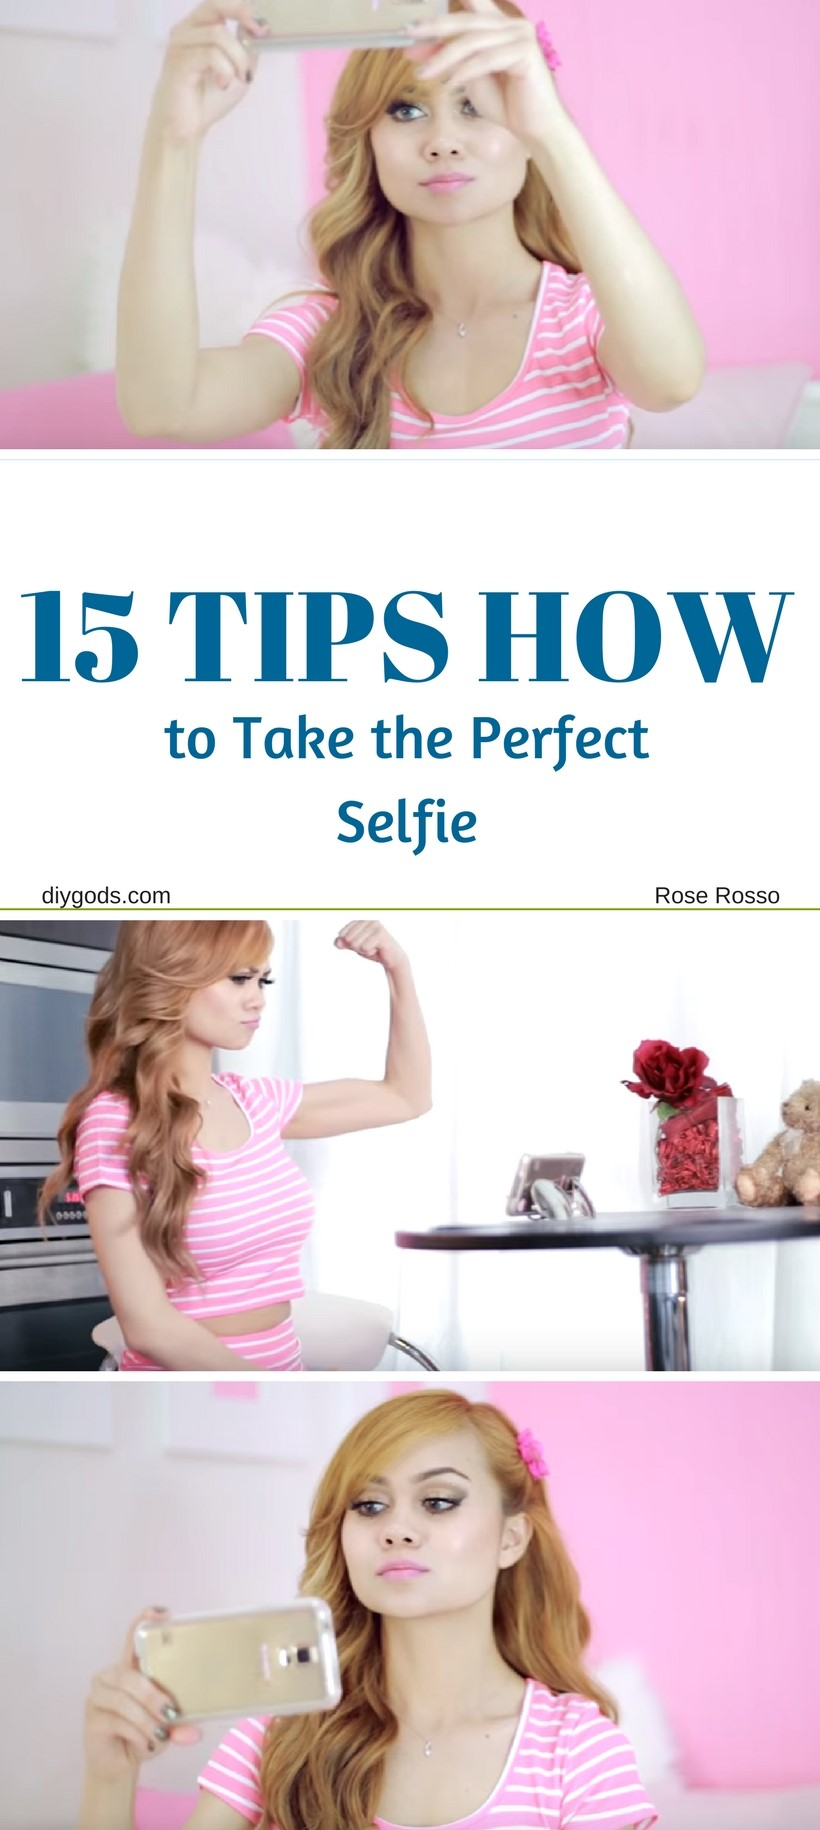 How to Take the Perfect Selfie – 15 MIND-BLOWING WAYS